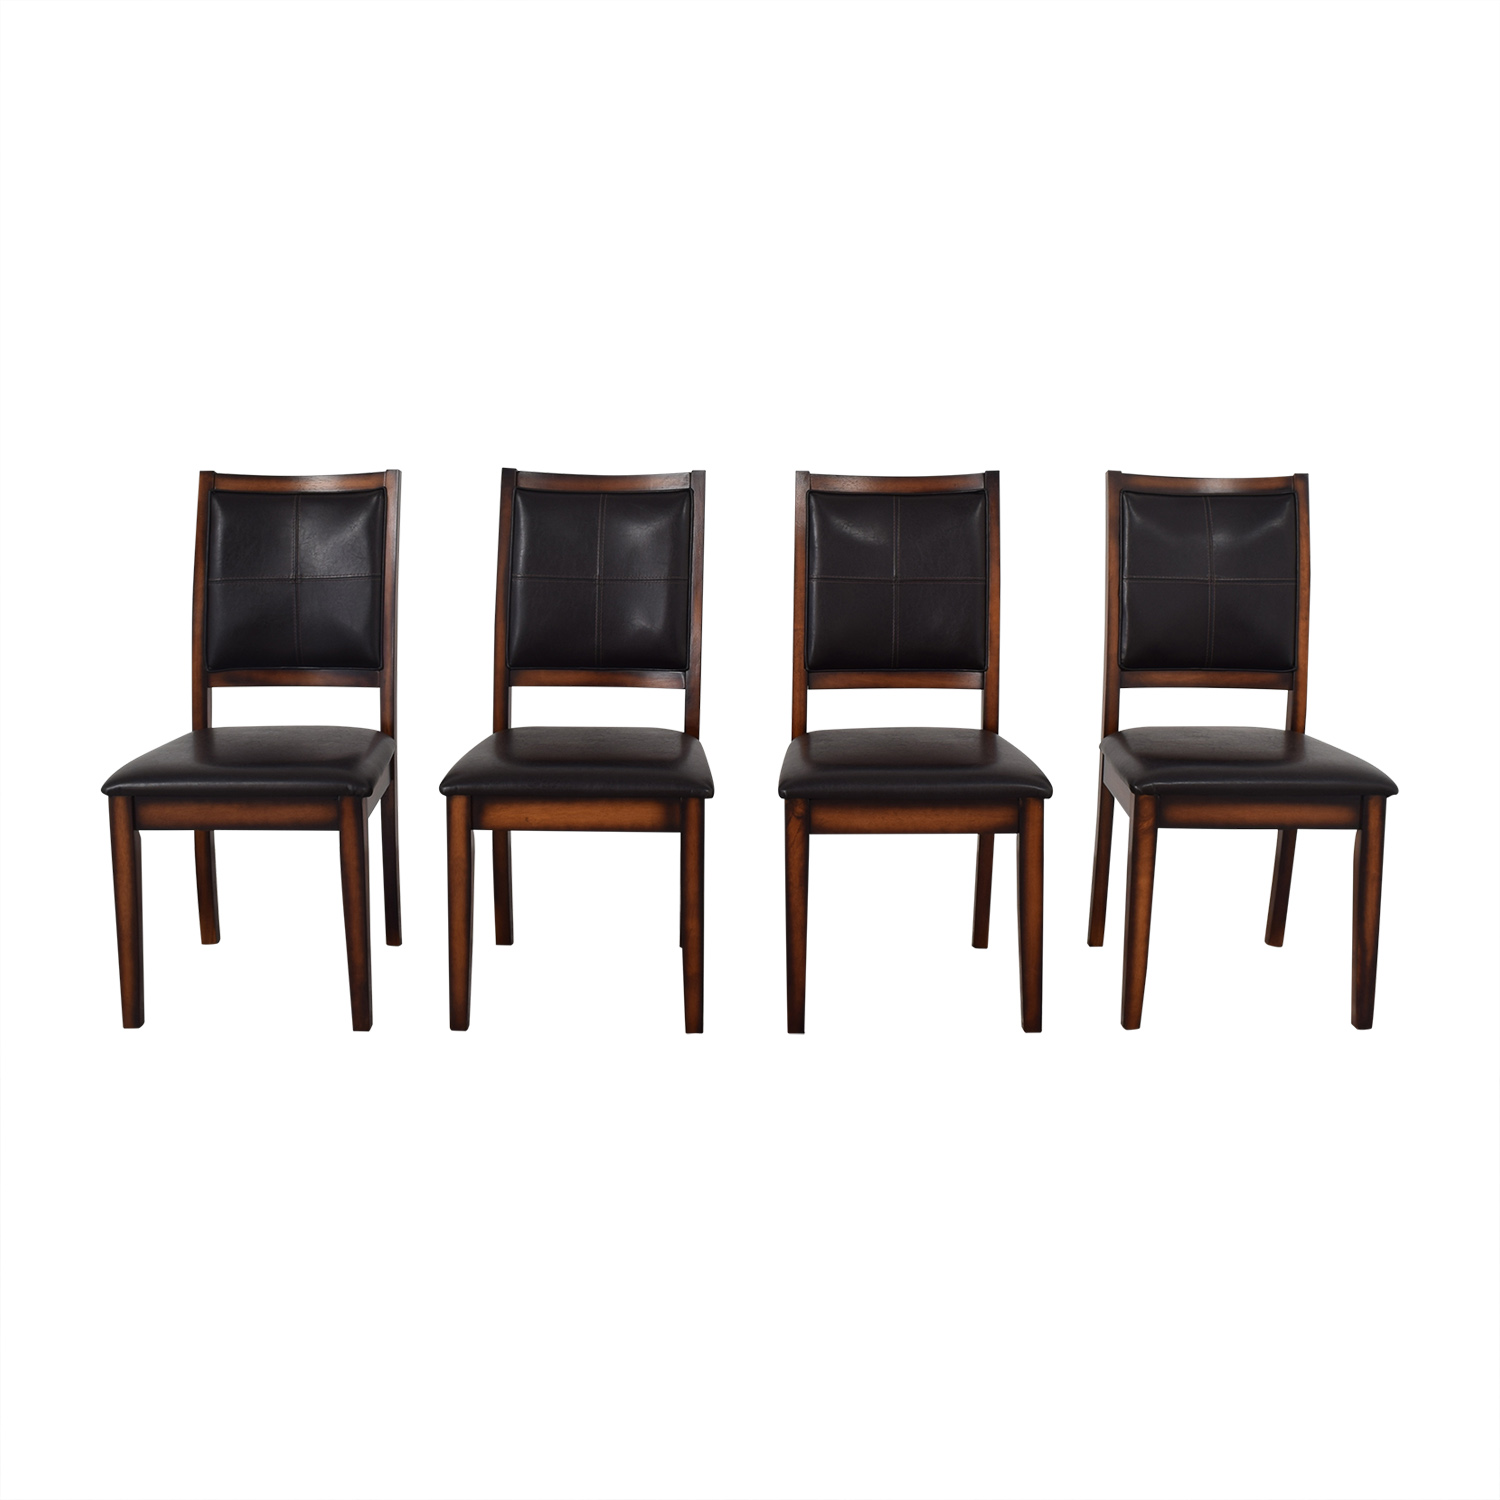 buy Raymour & Flanigan Upholstered Dining Chairs Raymour & Flanigan